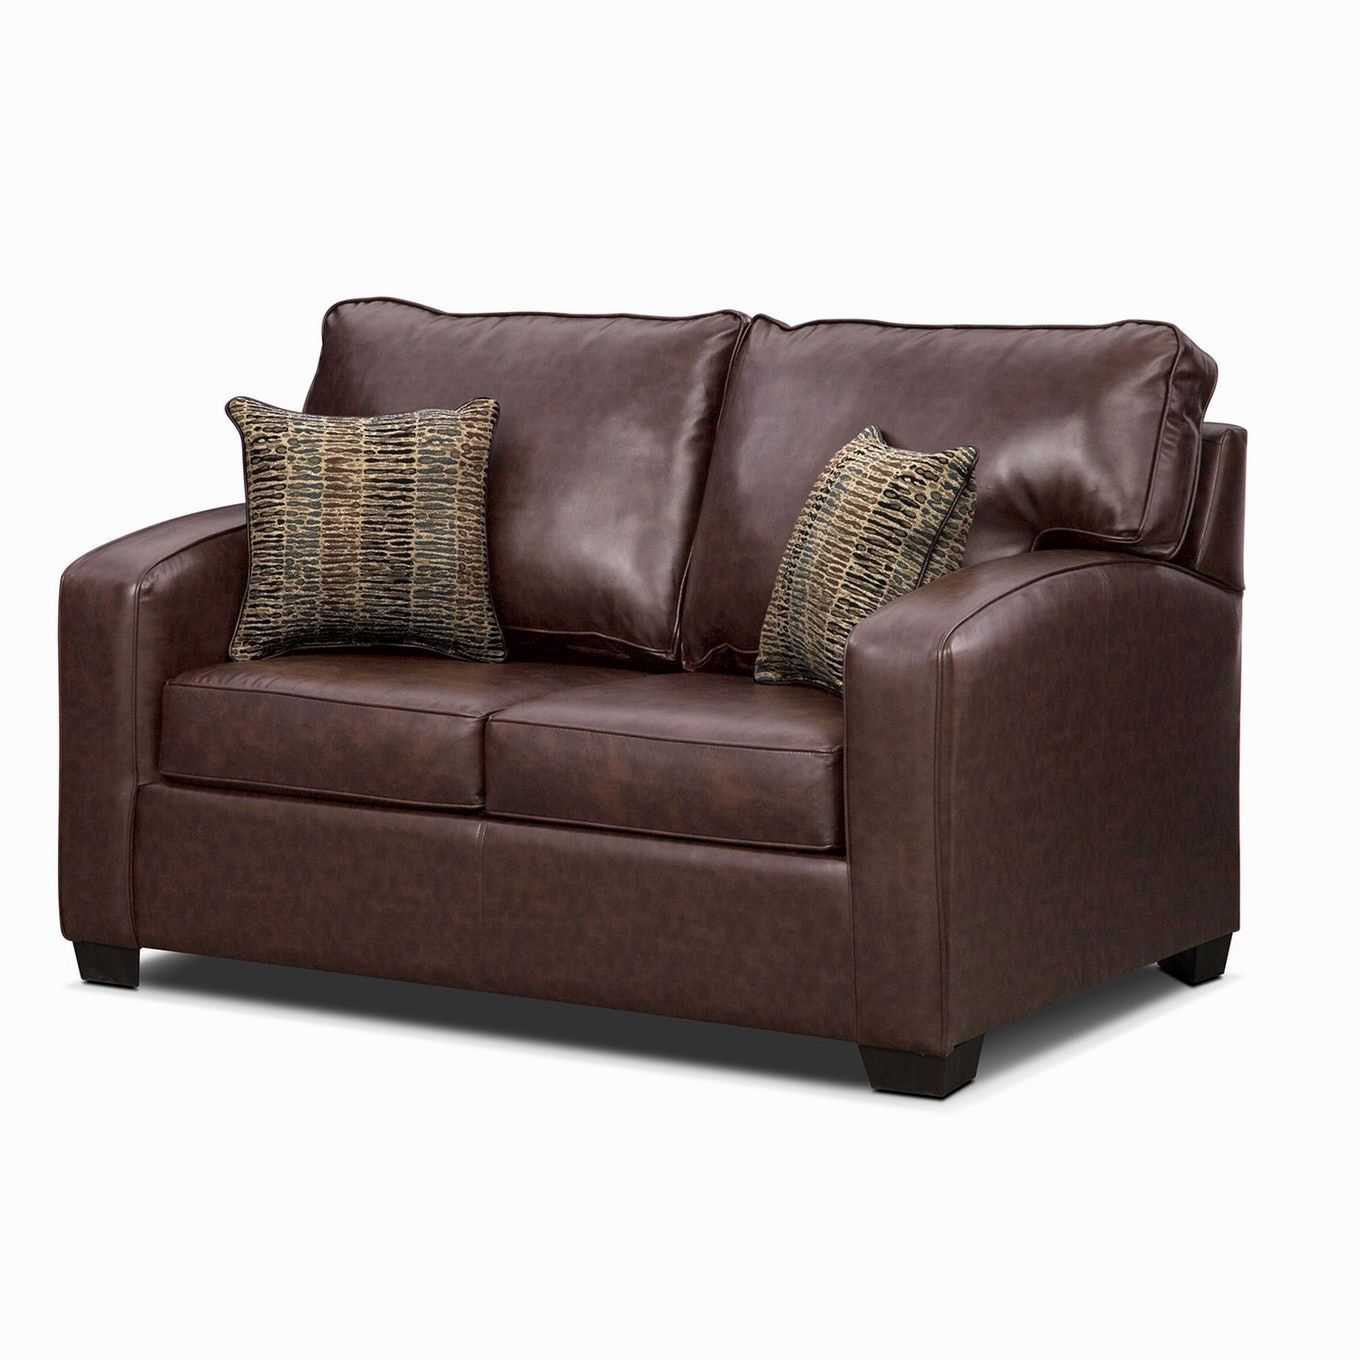 fantastic sectional sleeper sofas photograph-Finest Sectional Sleeper sofas Online